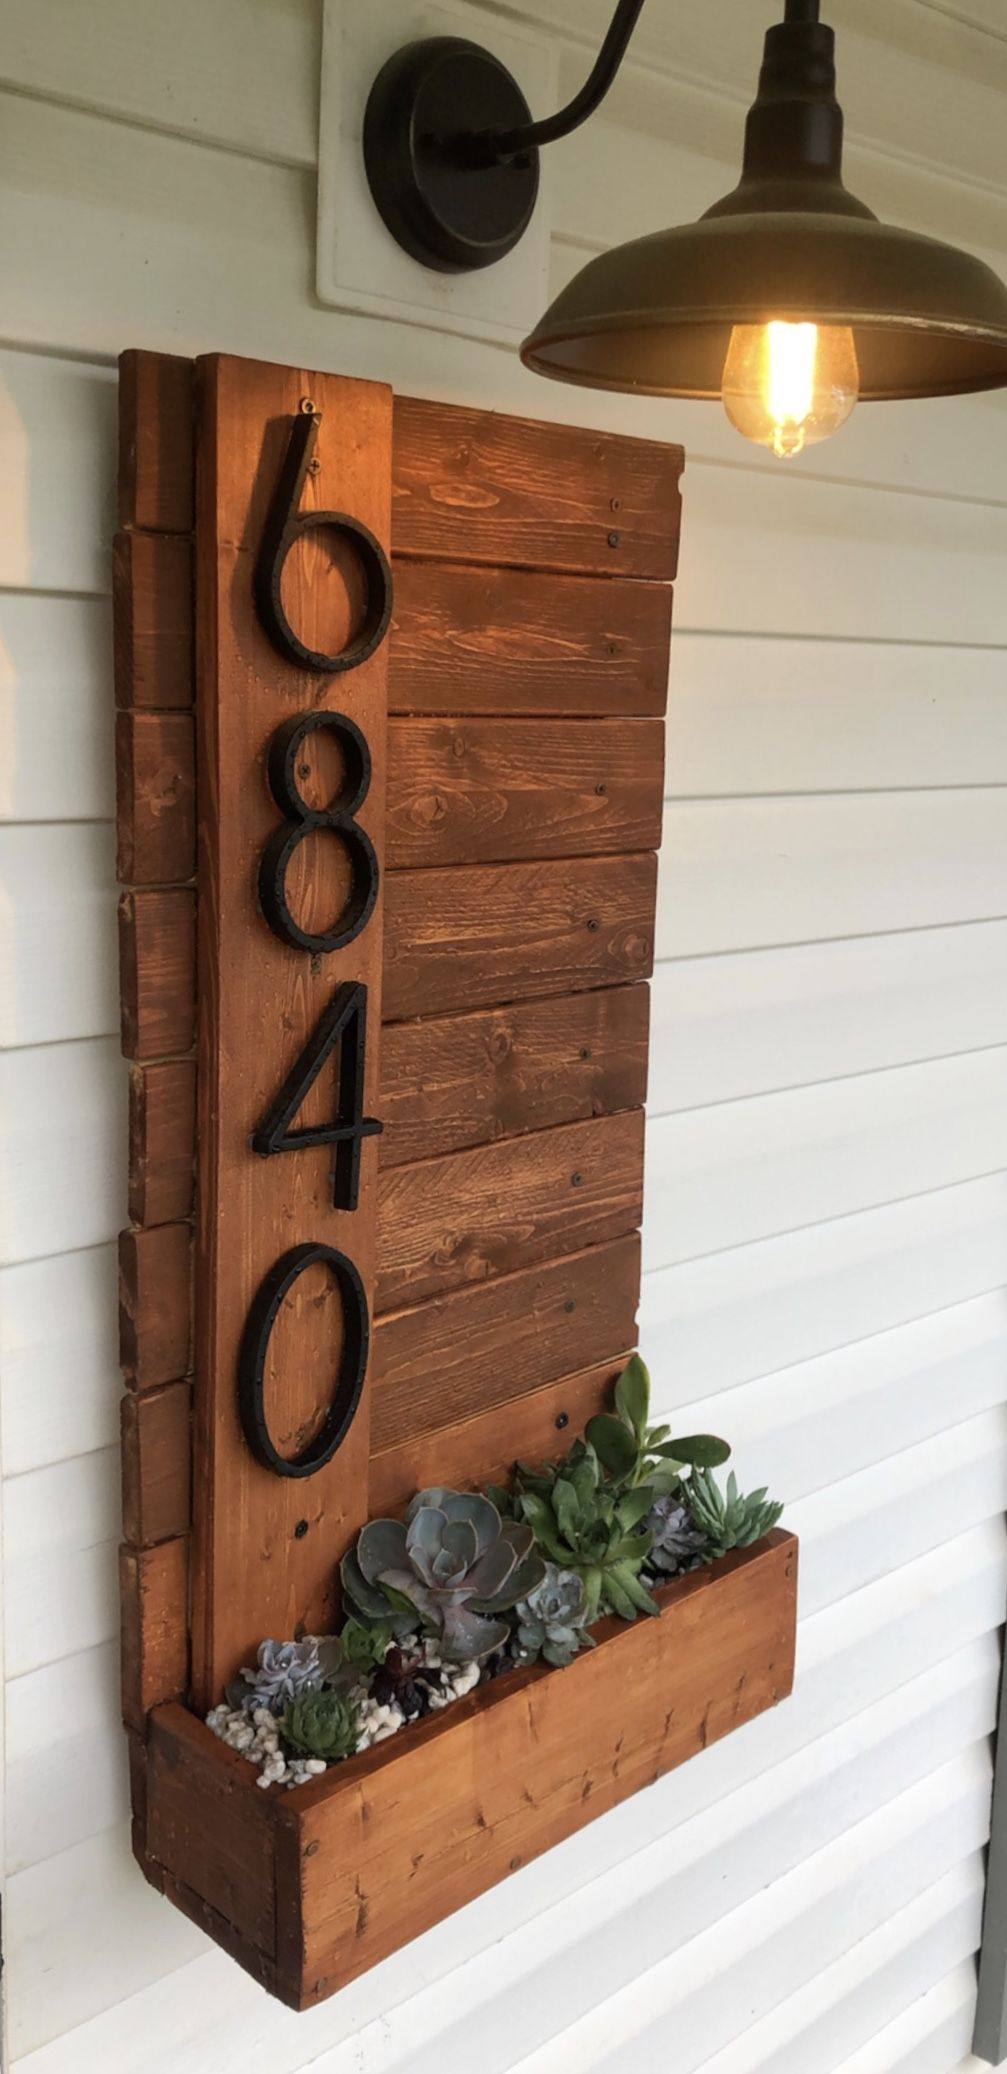 DIY house number sign / planter / Succulent garden in 2020